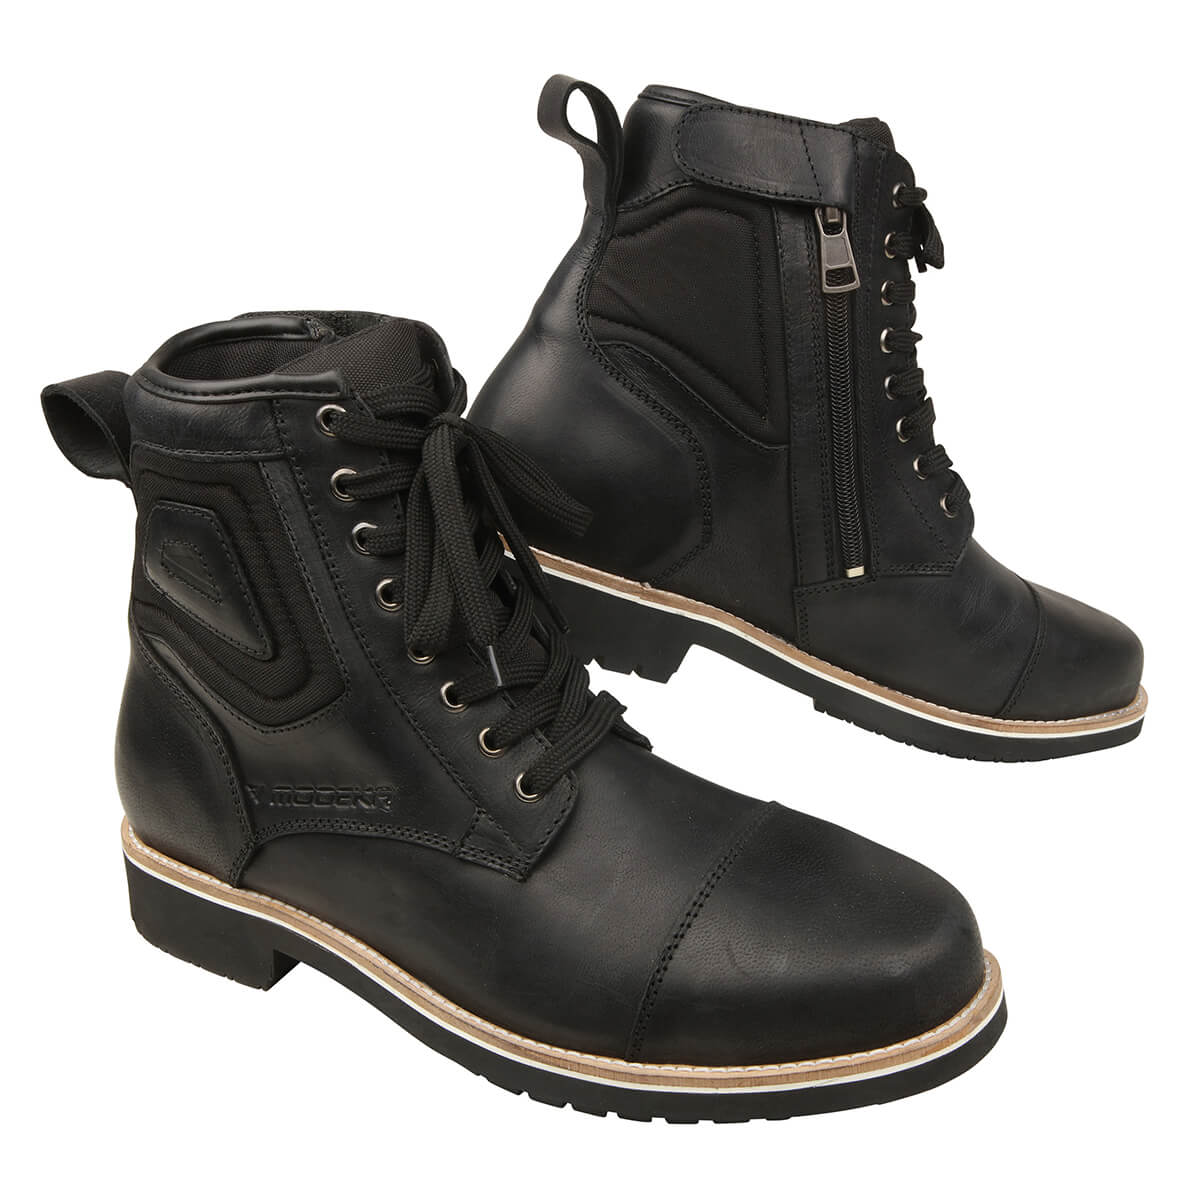 Stiefel Wolter